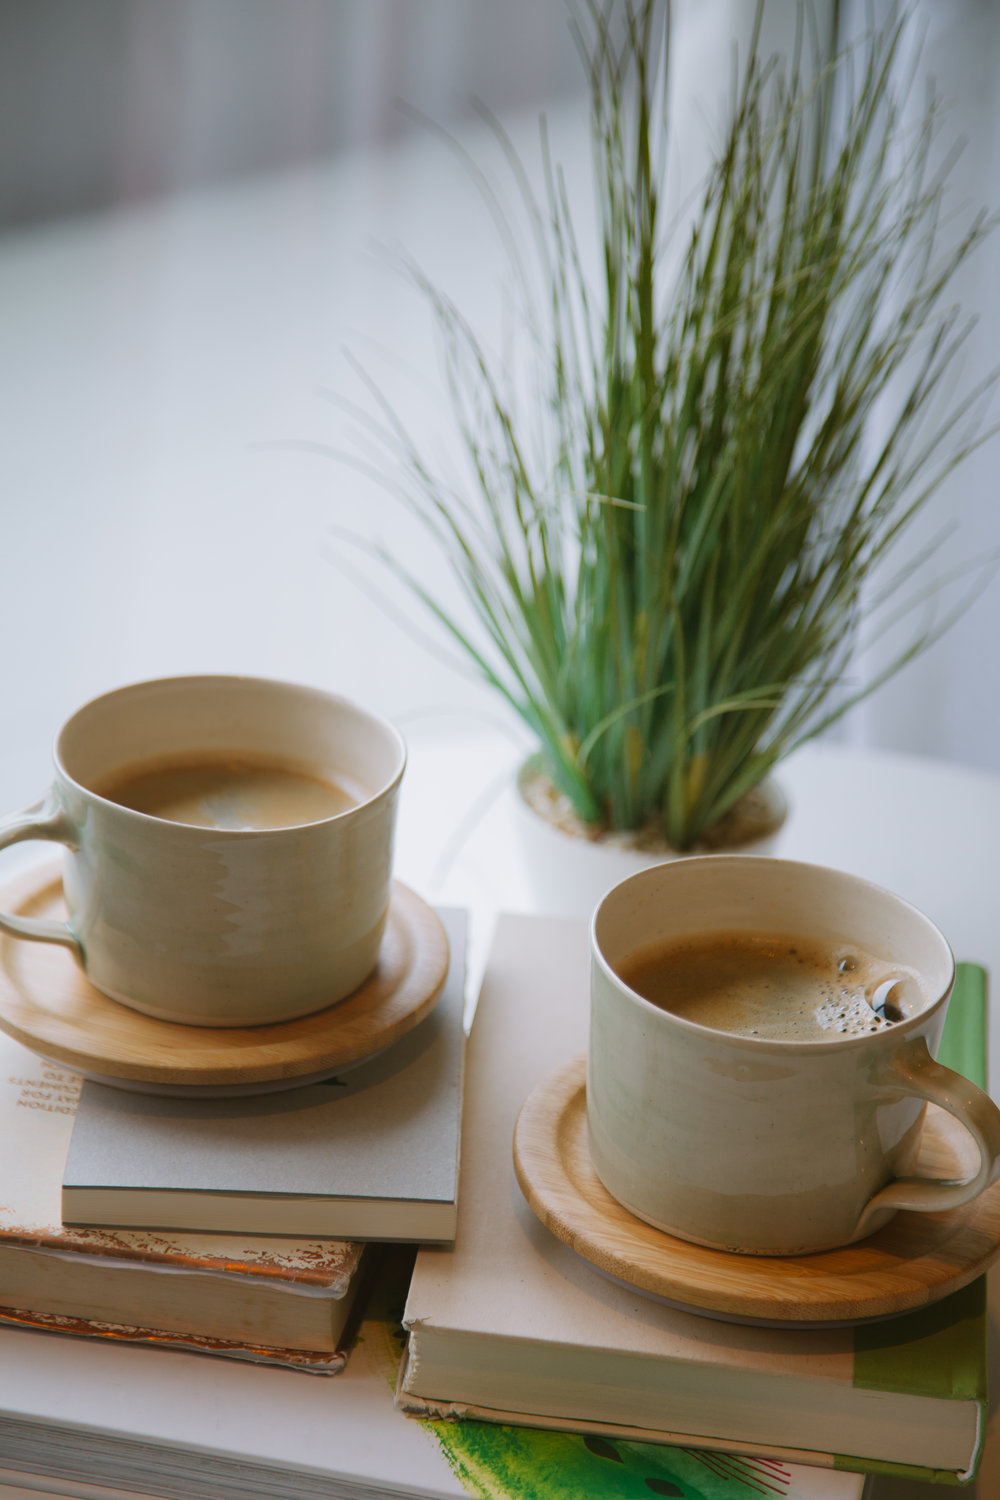 Coffee, the nonalcoholic drink of guilty pleasure, has for a long time been demonized. In recent years, however, nutritional data has surfaced that reverse much of these long-standing results and affirm that coffee no longer needs to be shamed.But there are some catches.Here are 8 things from nutritional science to consider. -